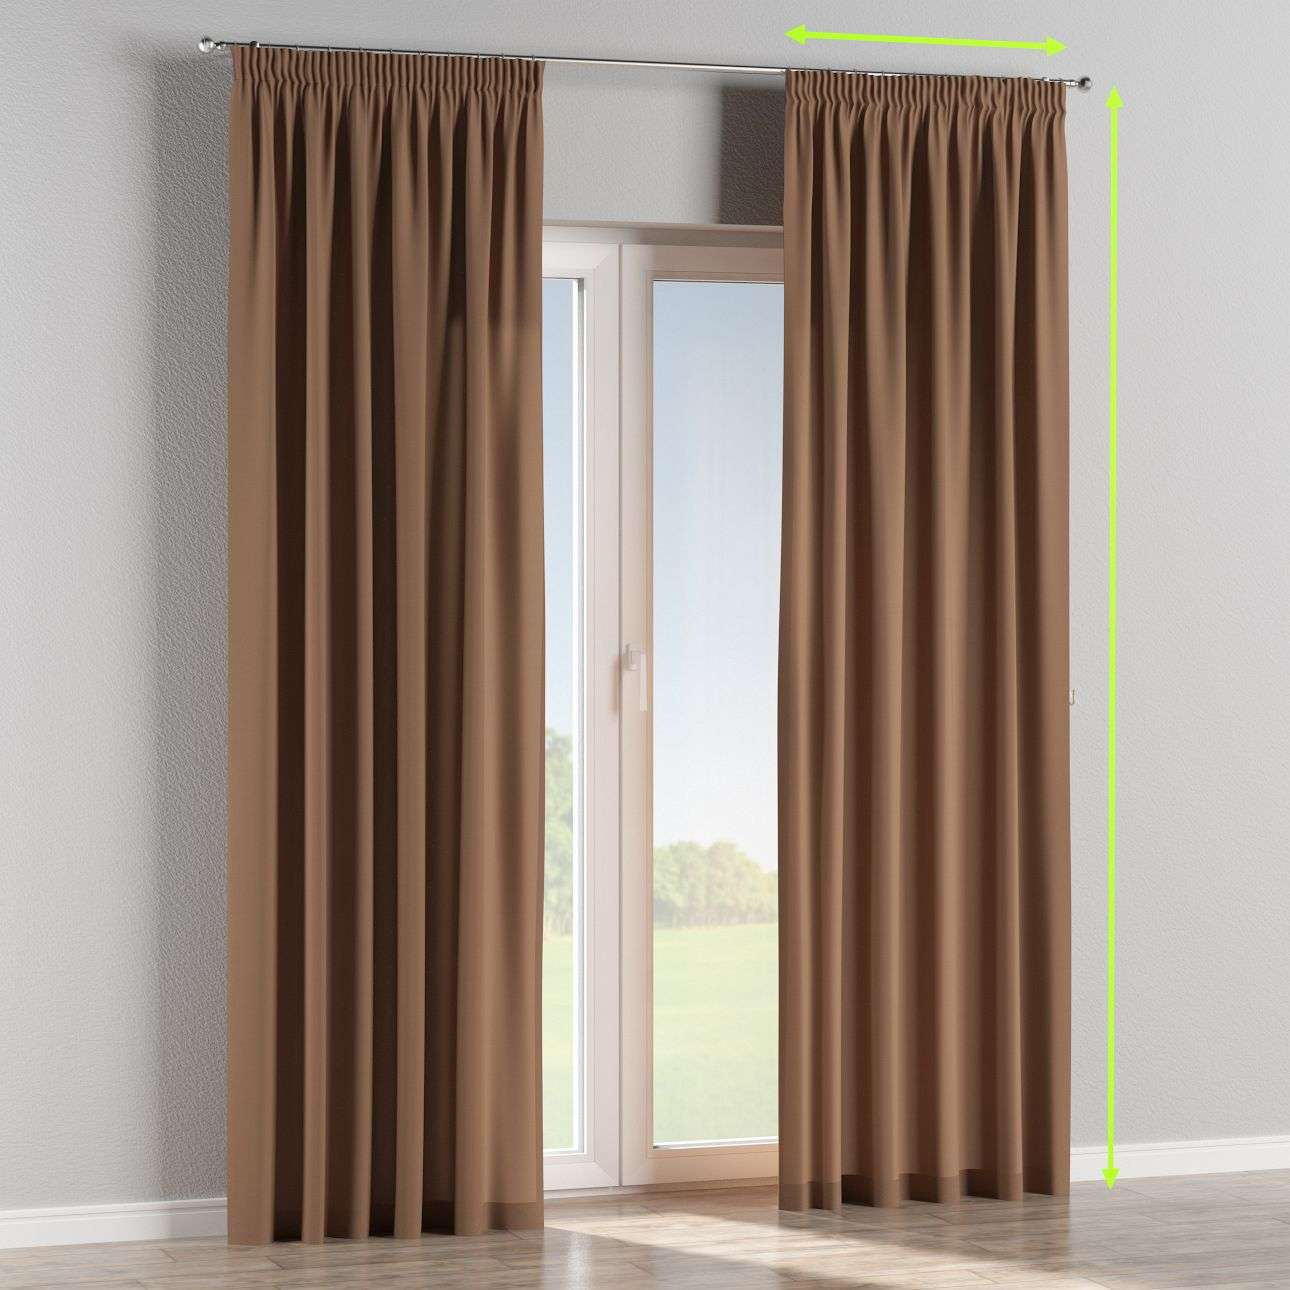 Pencil pleat curtains in collection Cotton Panama, fabric: 702-02